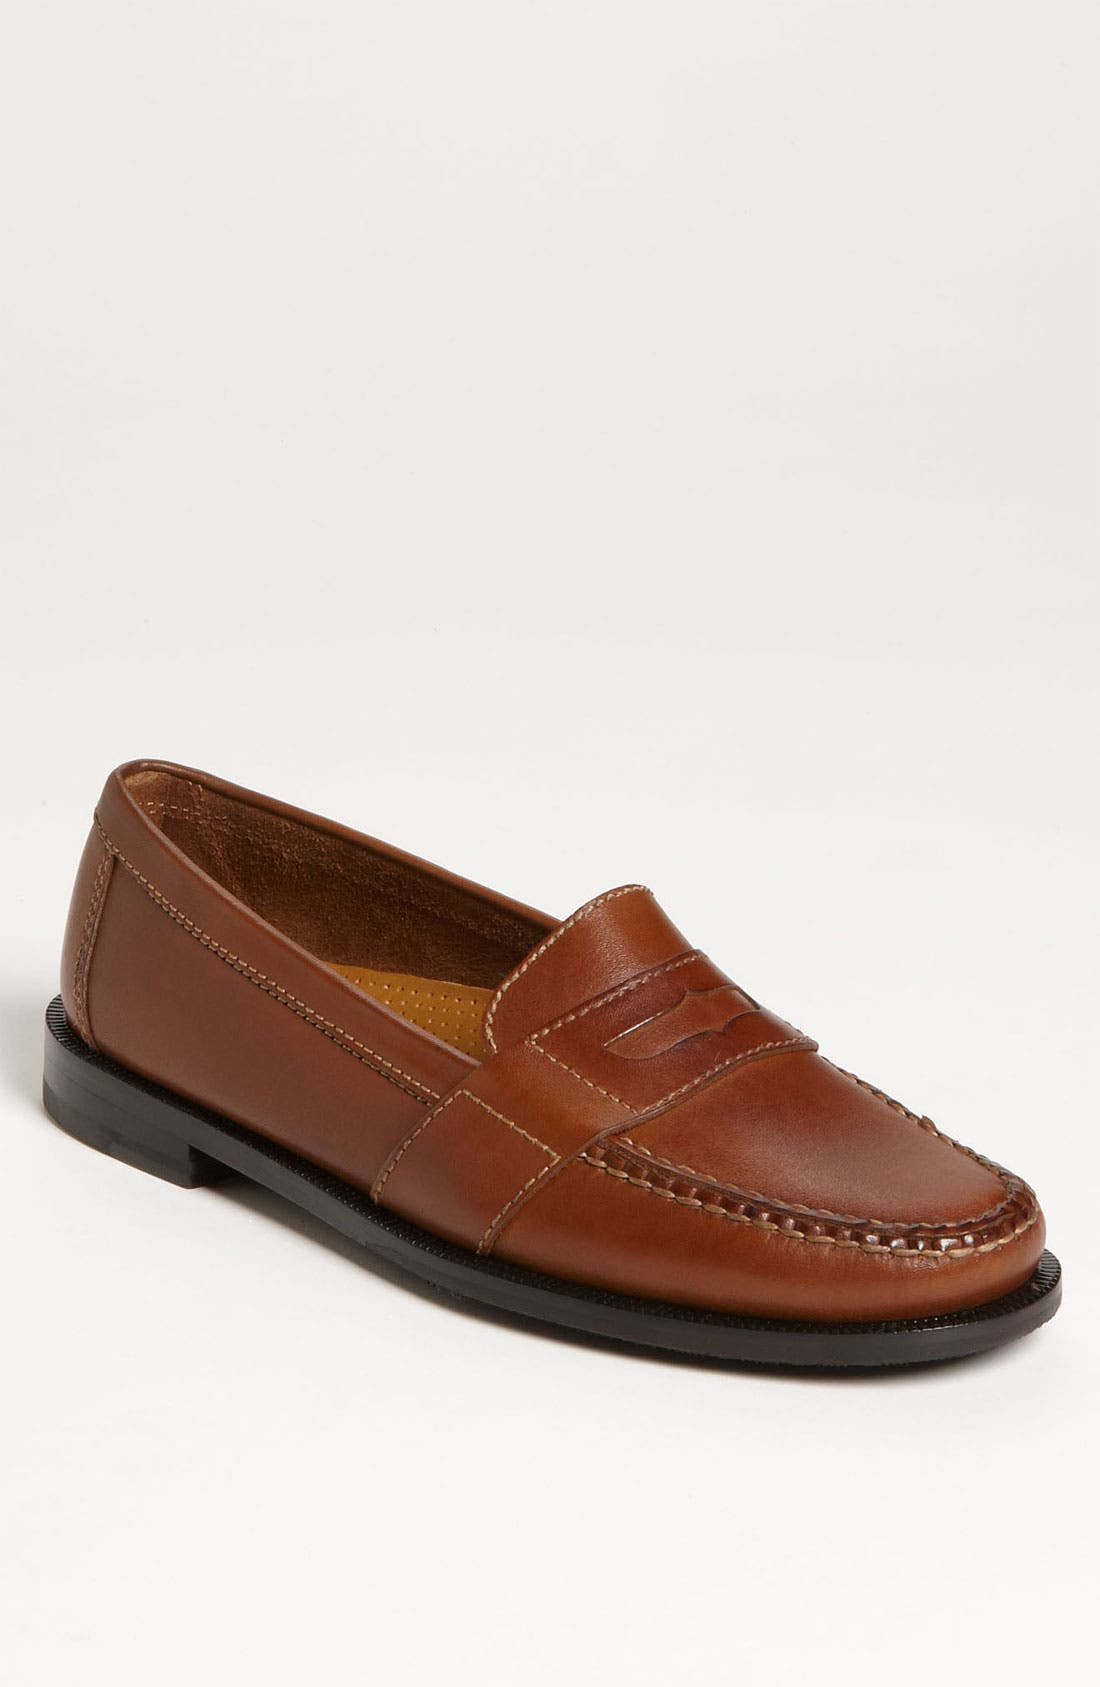 Alternate Image 1 Selected - Cole Haan 'Douglas' Loafer (Online Only)   (Men)